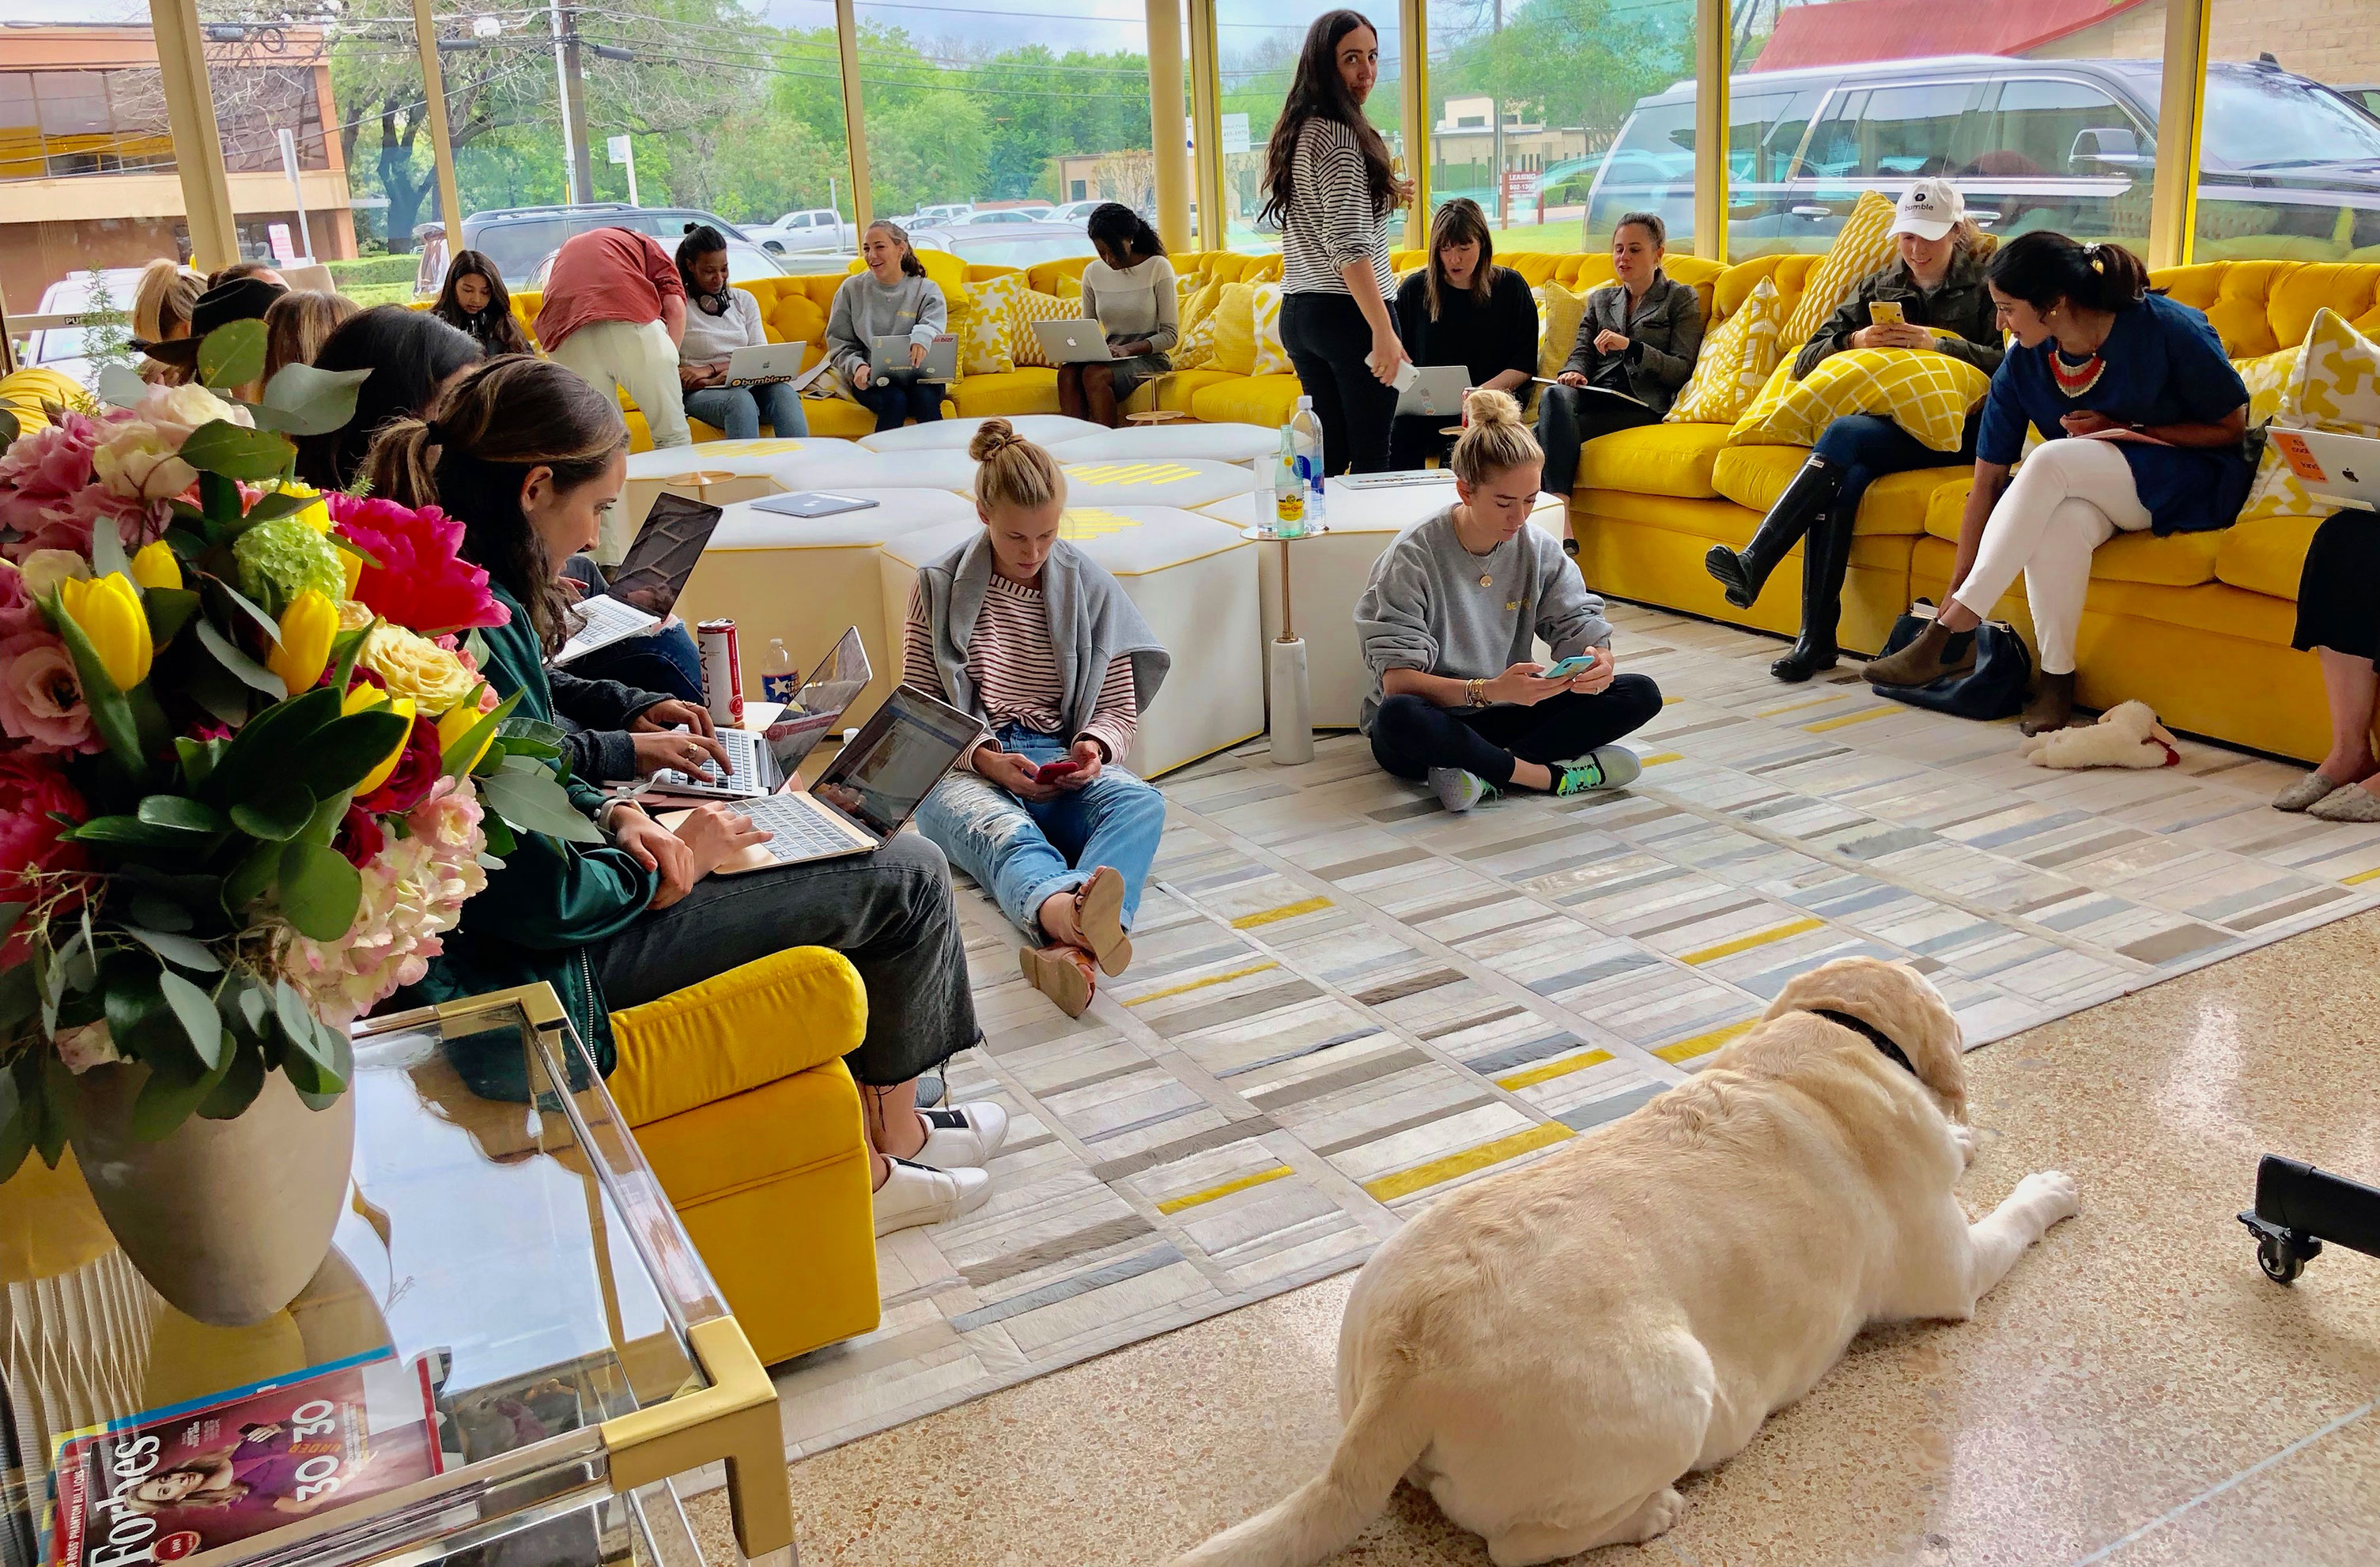 Bumble india office